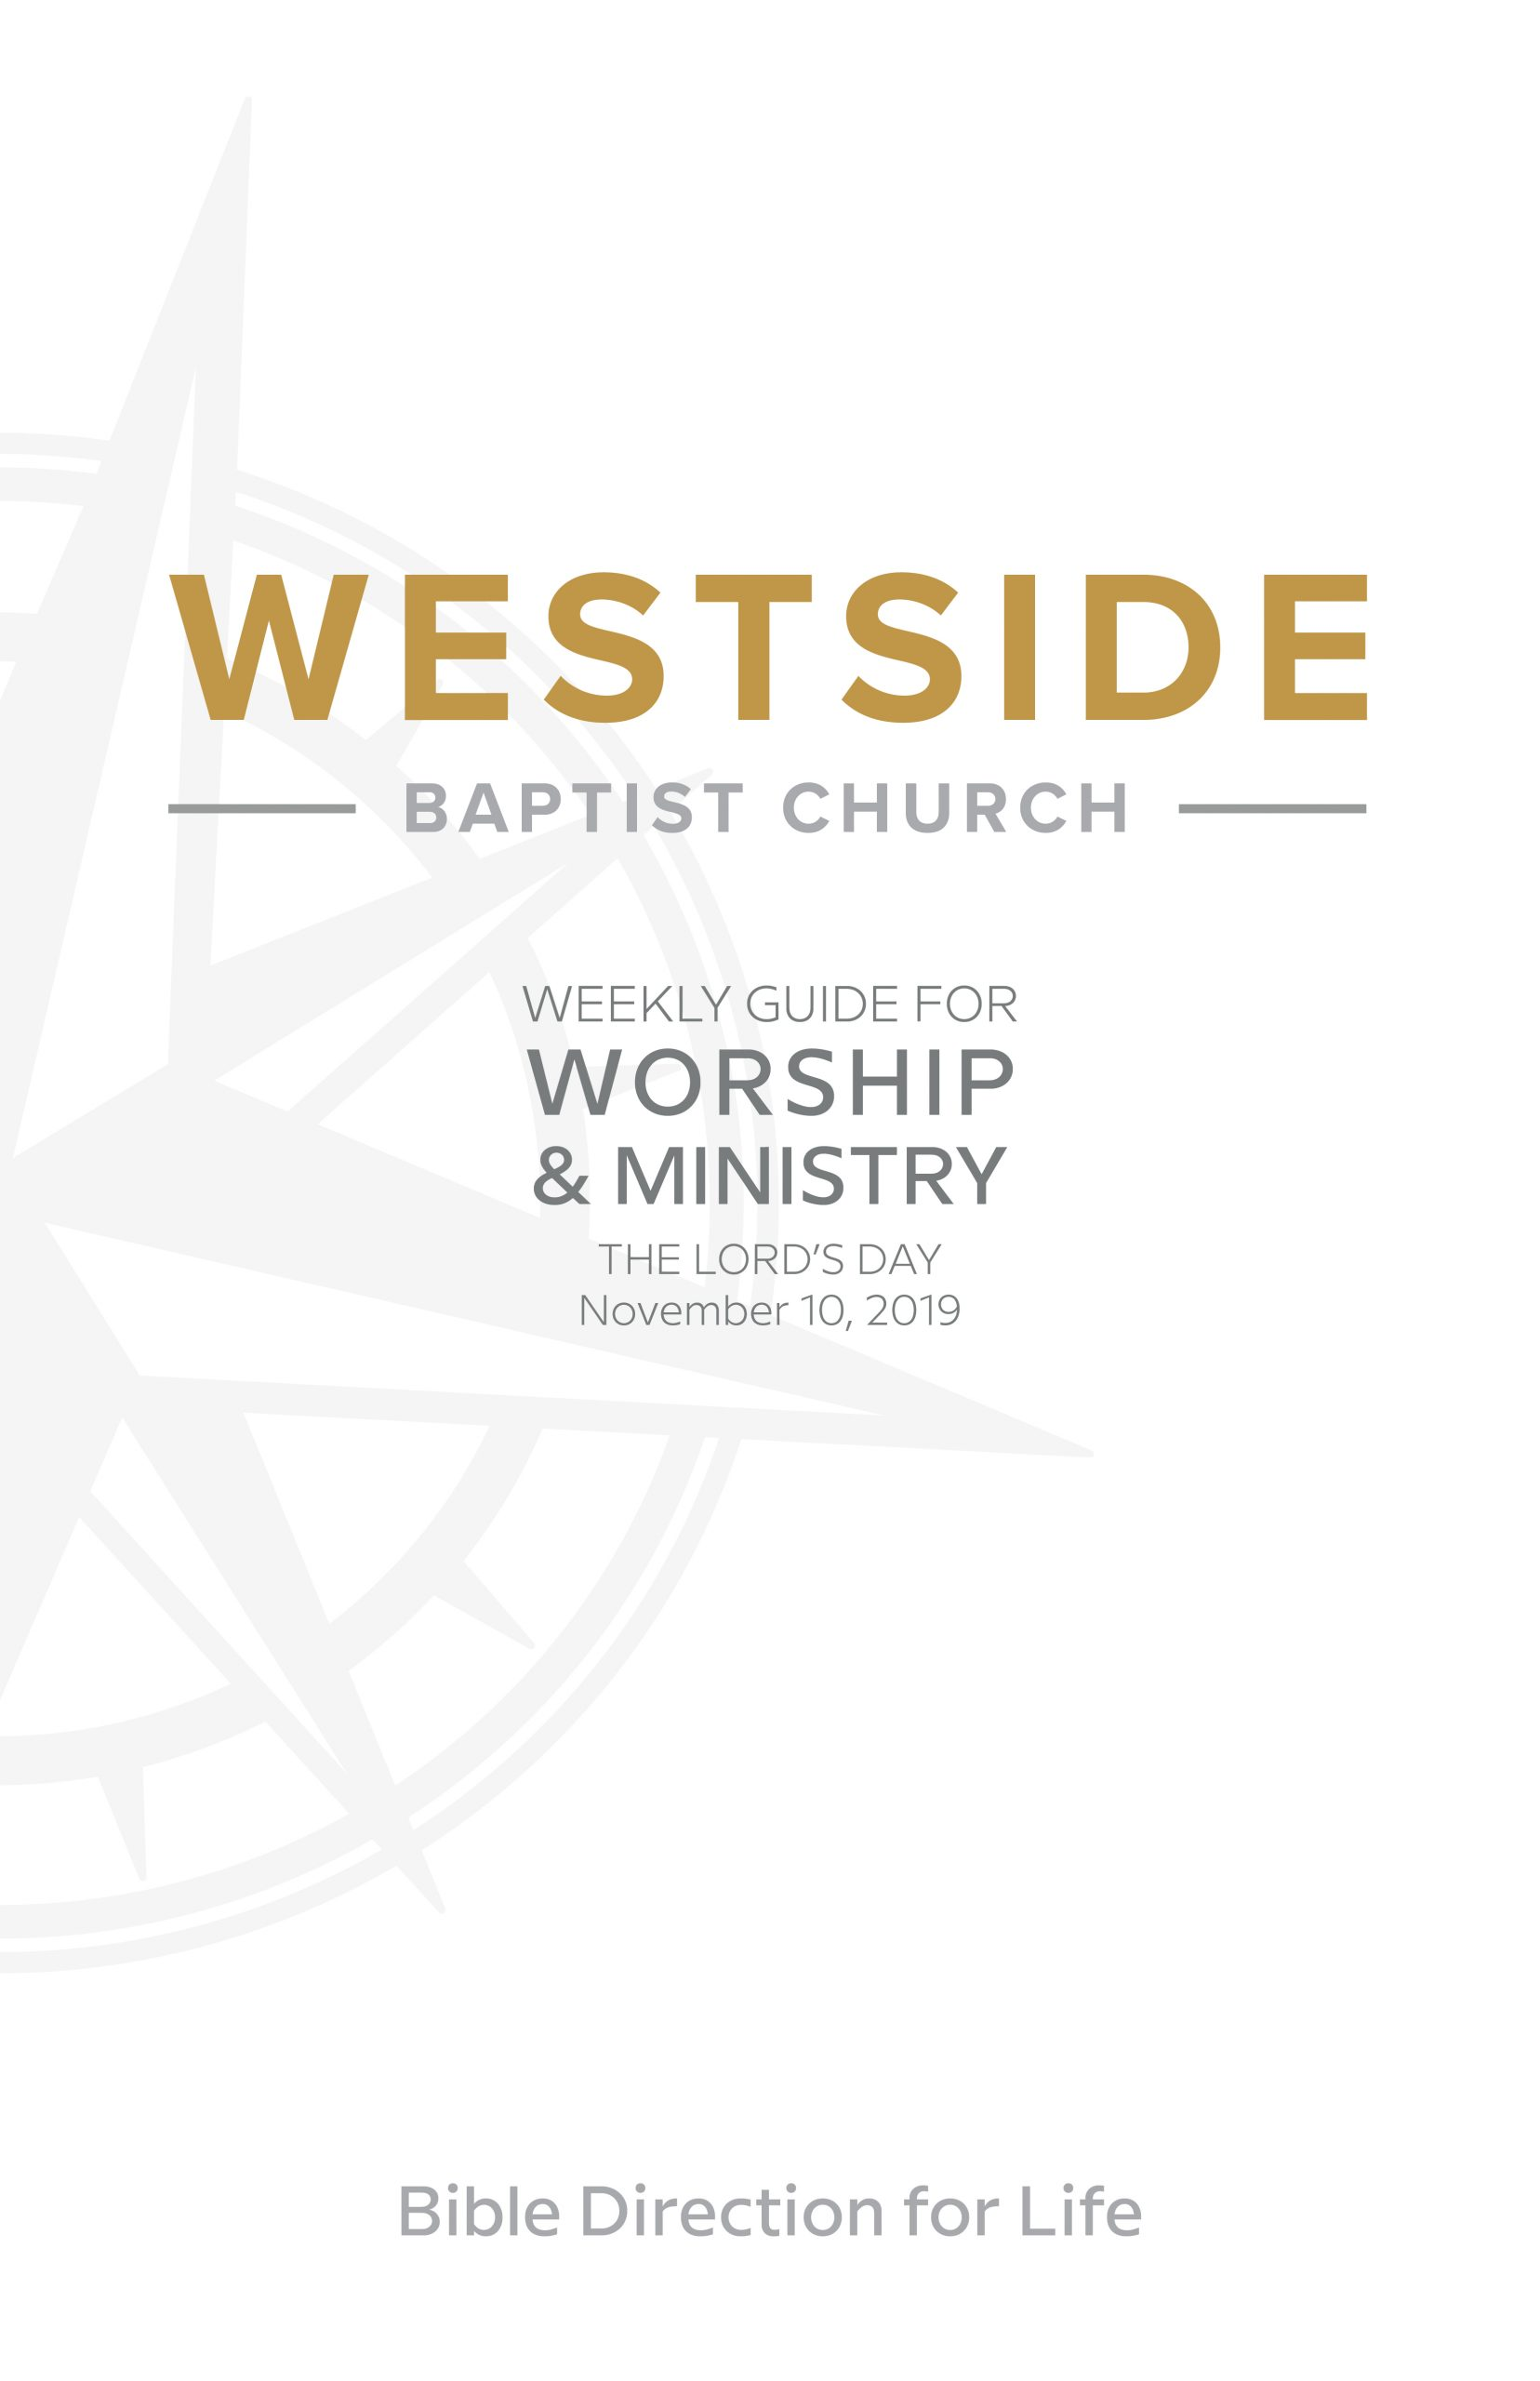 Weekly Guide for Worship and Ministry—November 10